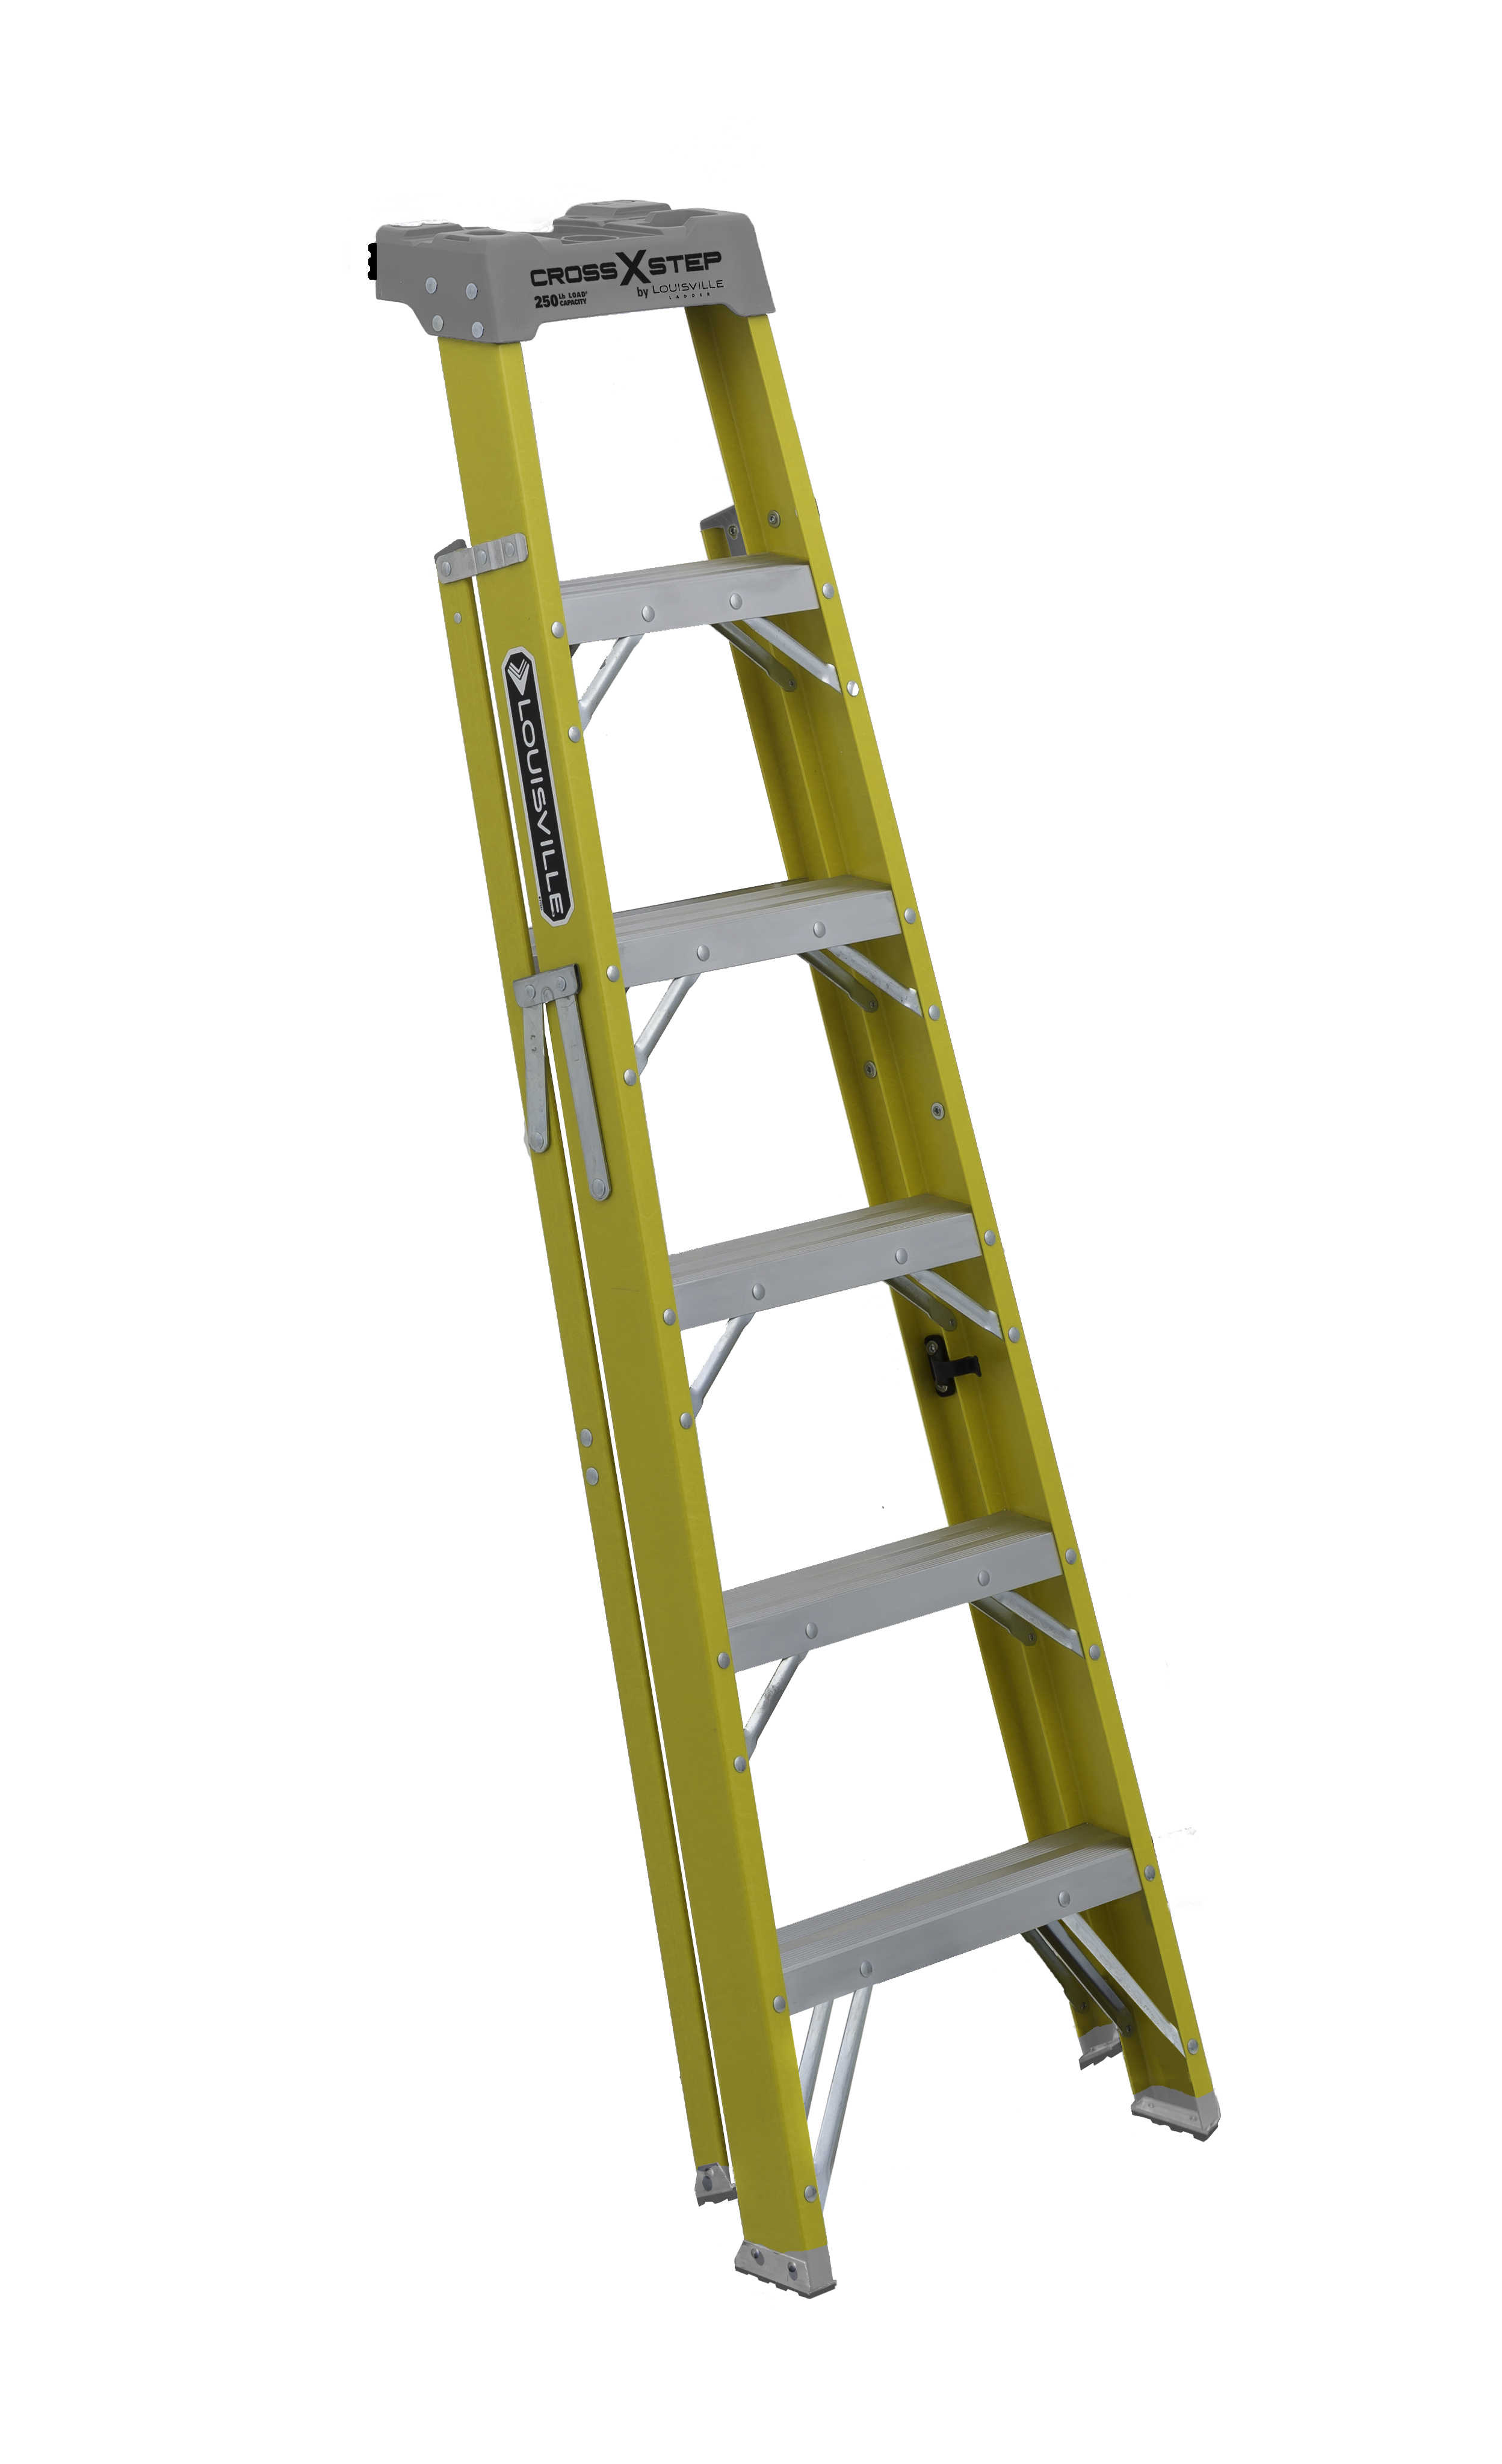 Louisville Ladder W-3116-06 6 ft. Fiberglass 2-in-1 Cross Step Ladder, Type I, 250 Lbs Load Capacity